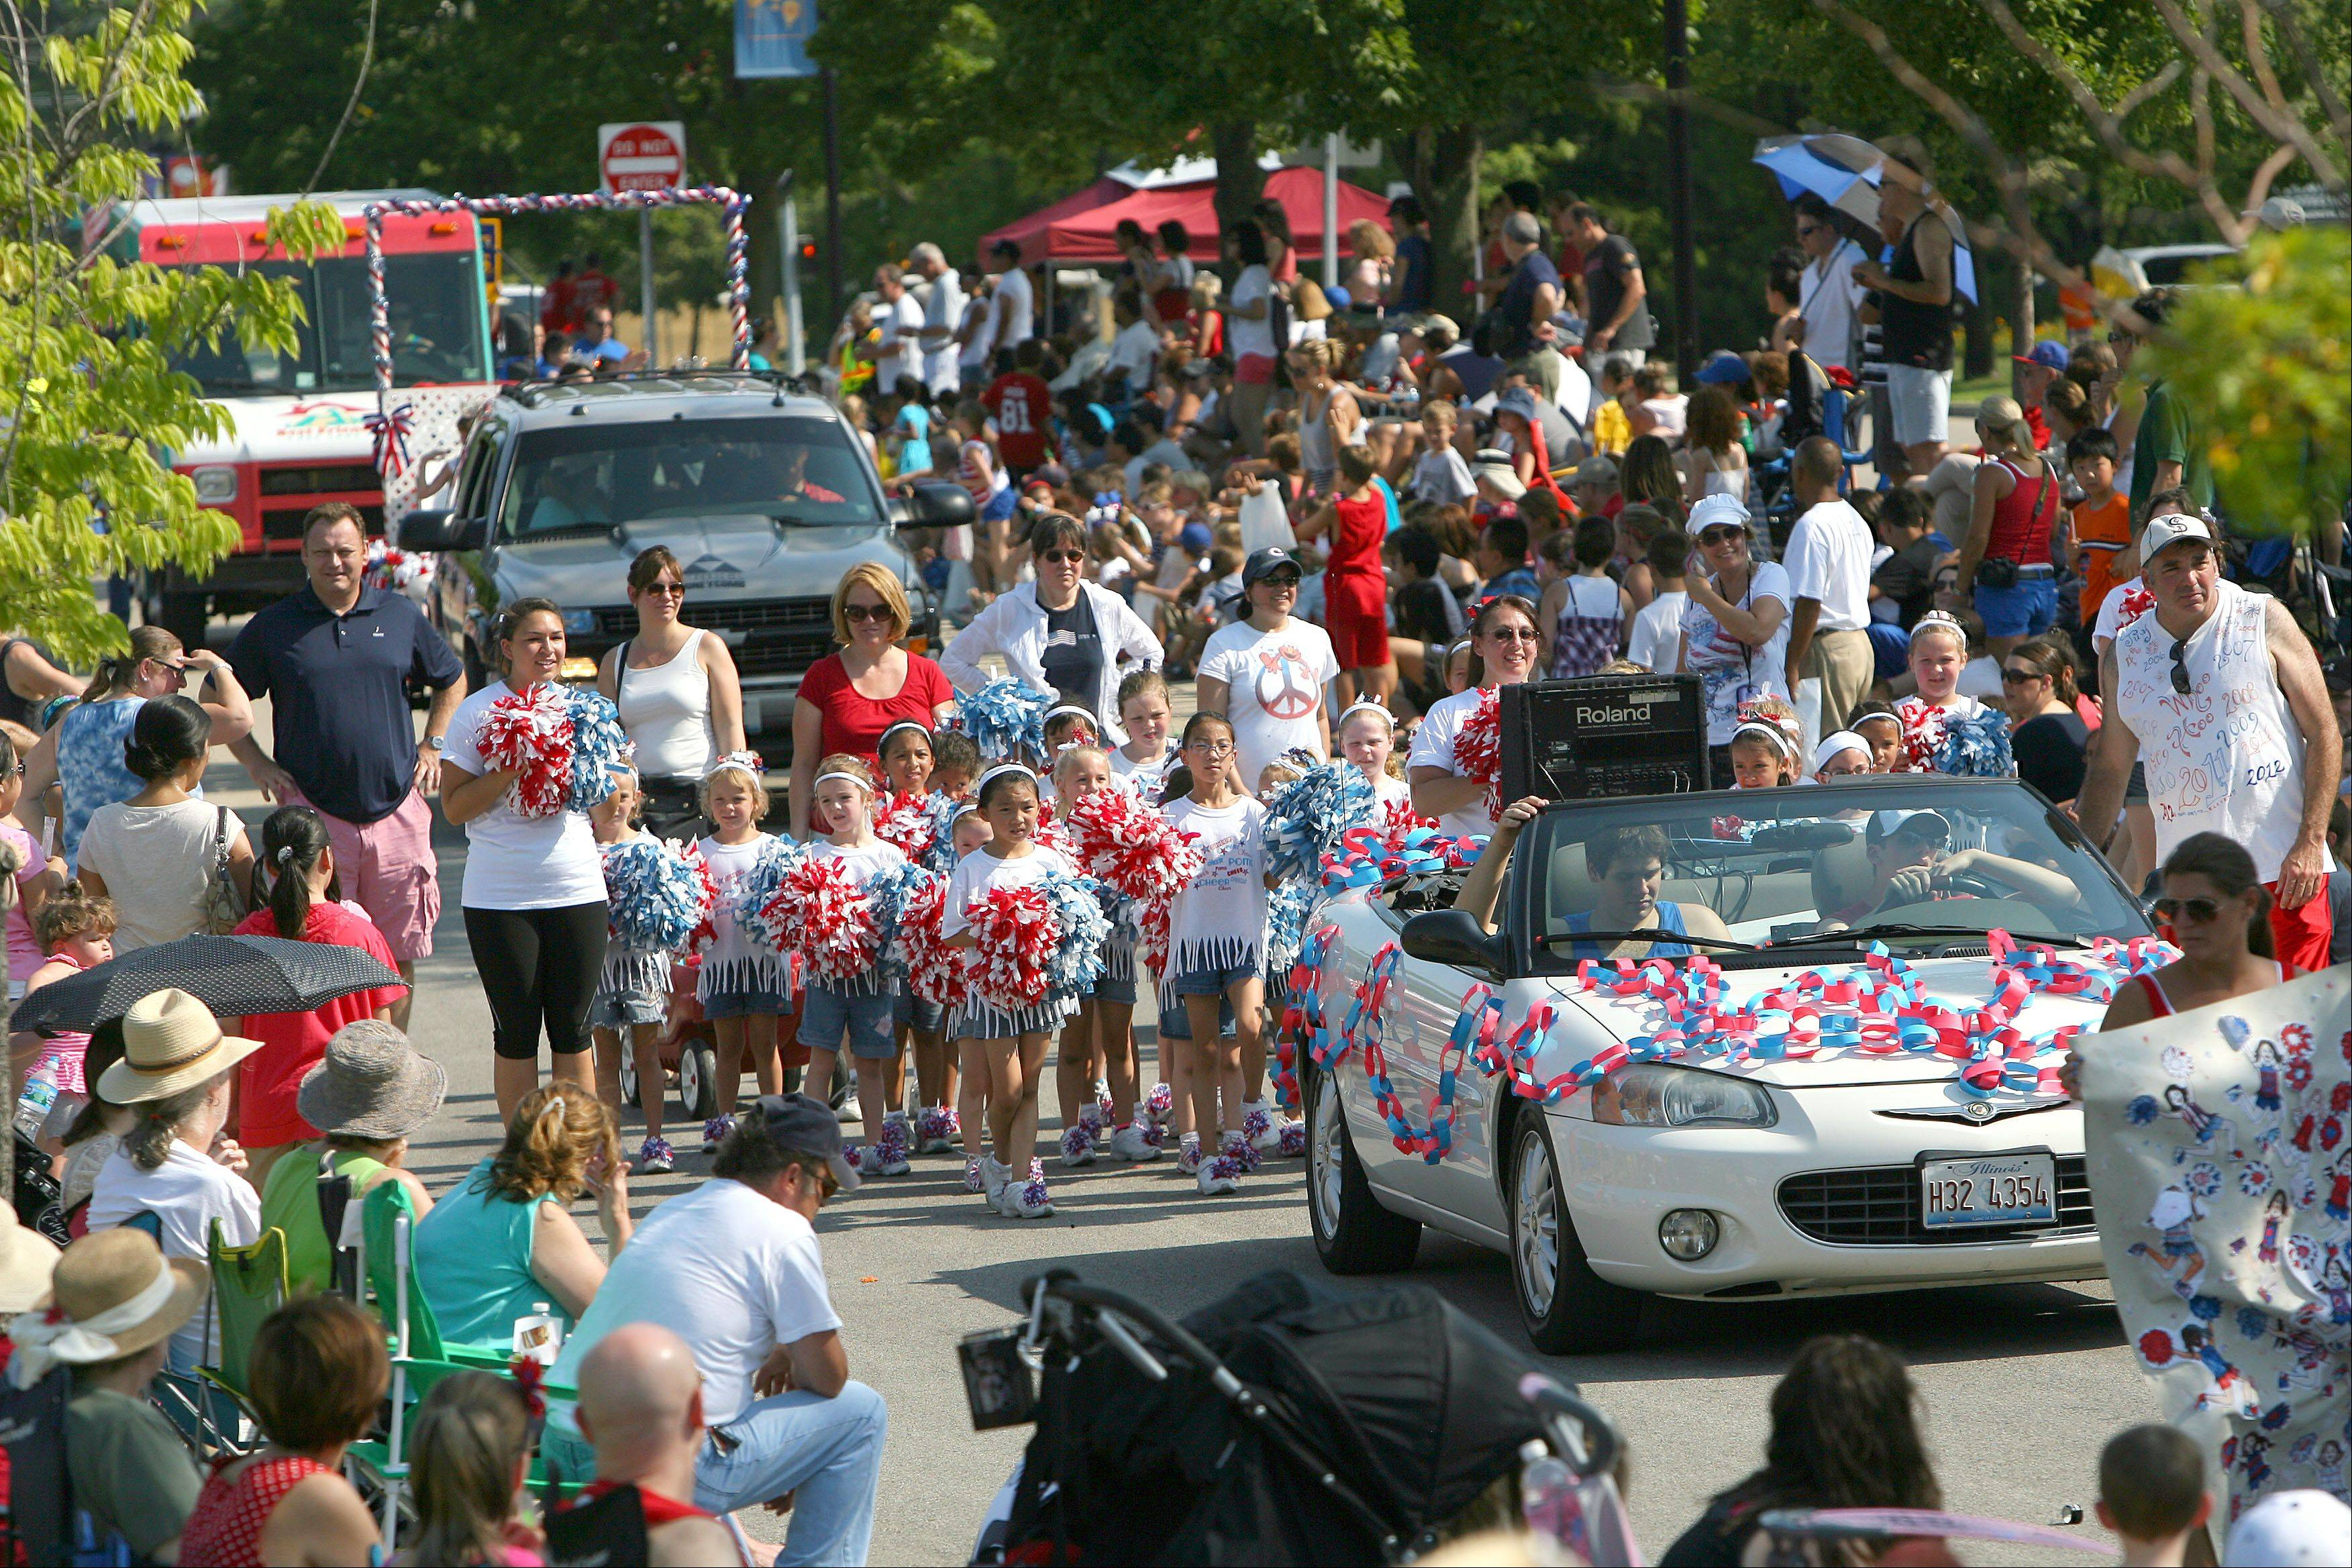 The Vernon Hills Fourth of July Parade kicks off Wednesday morning.